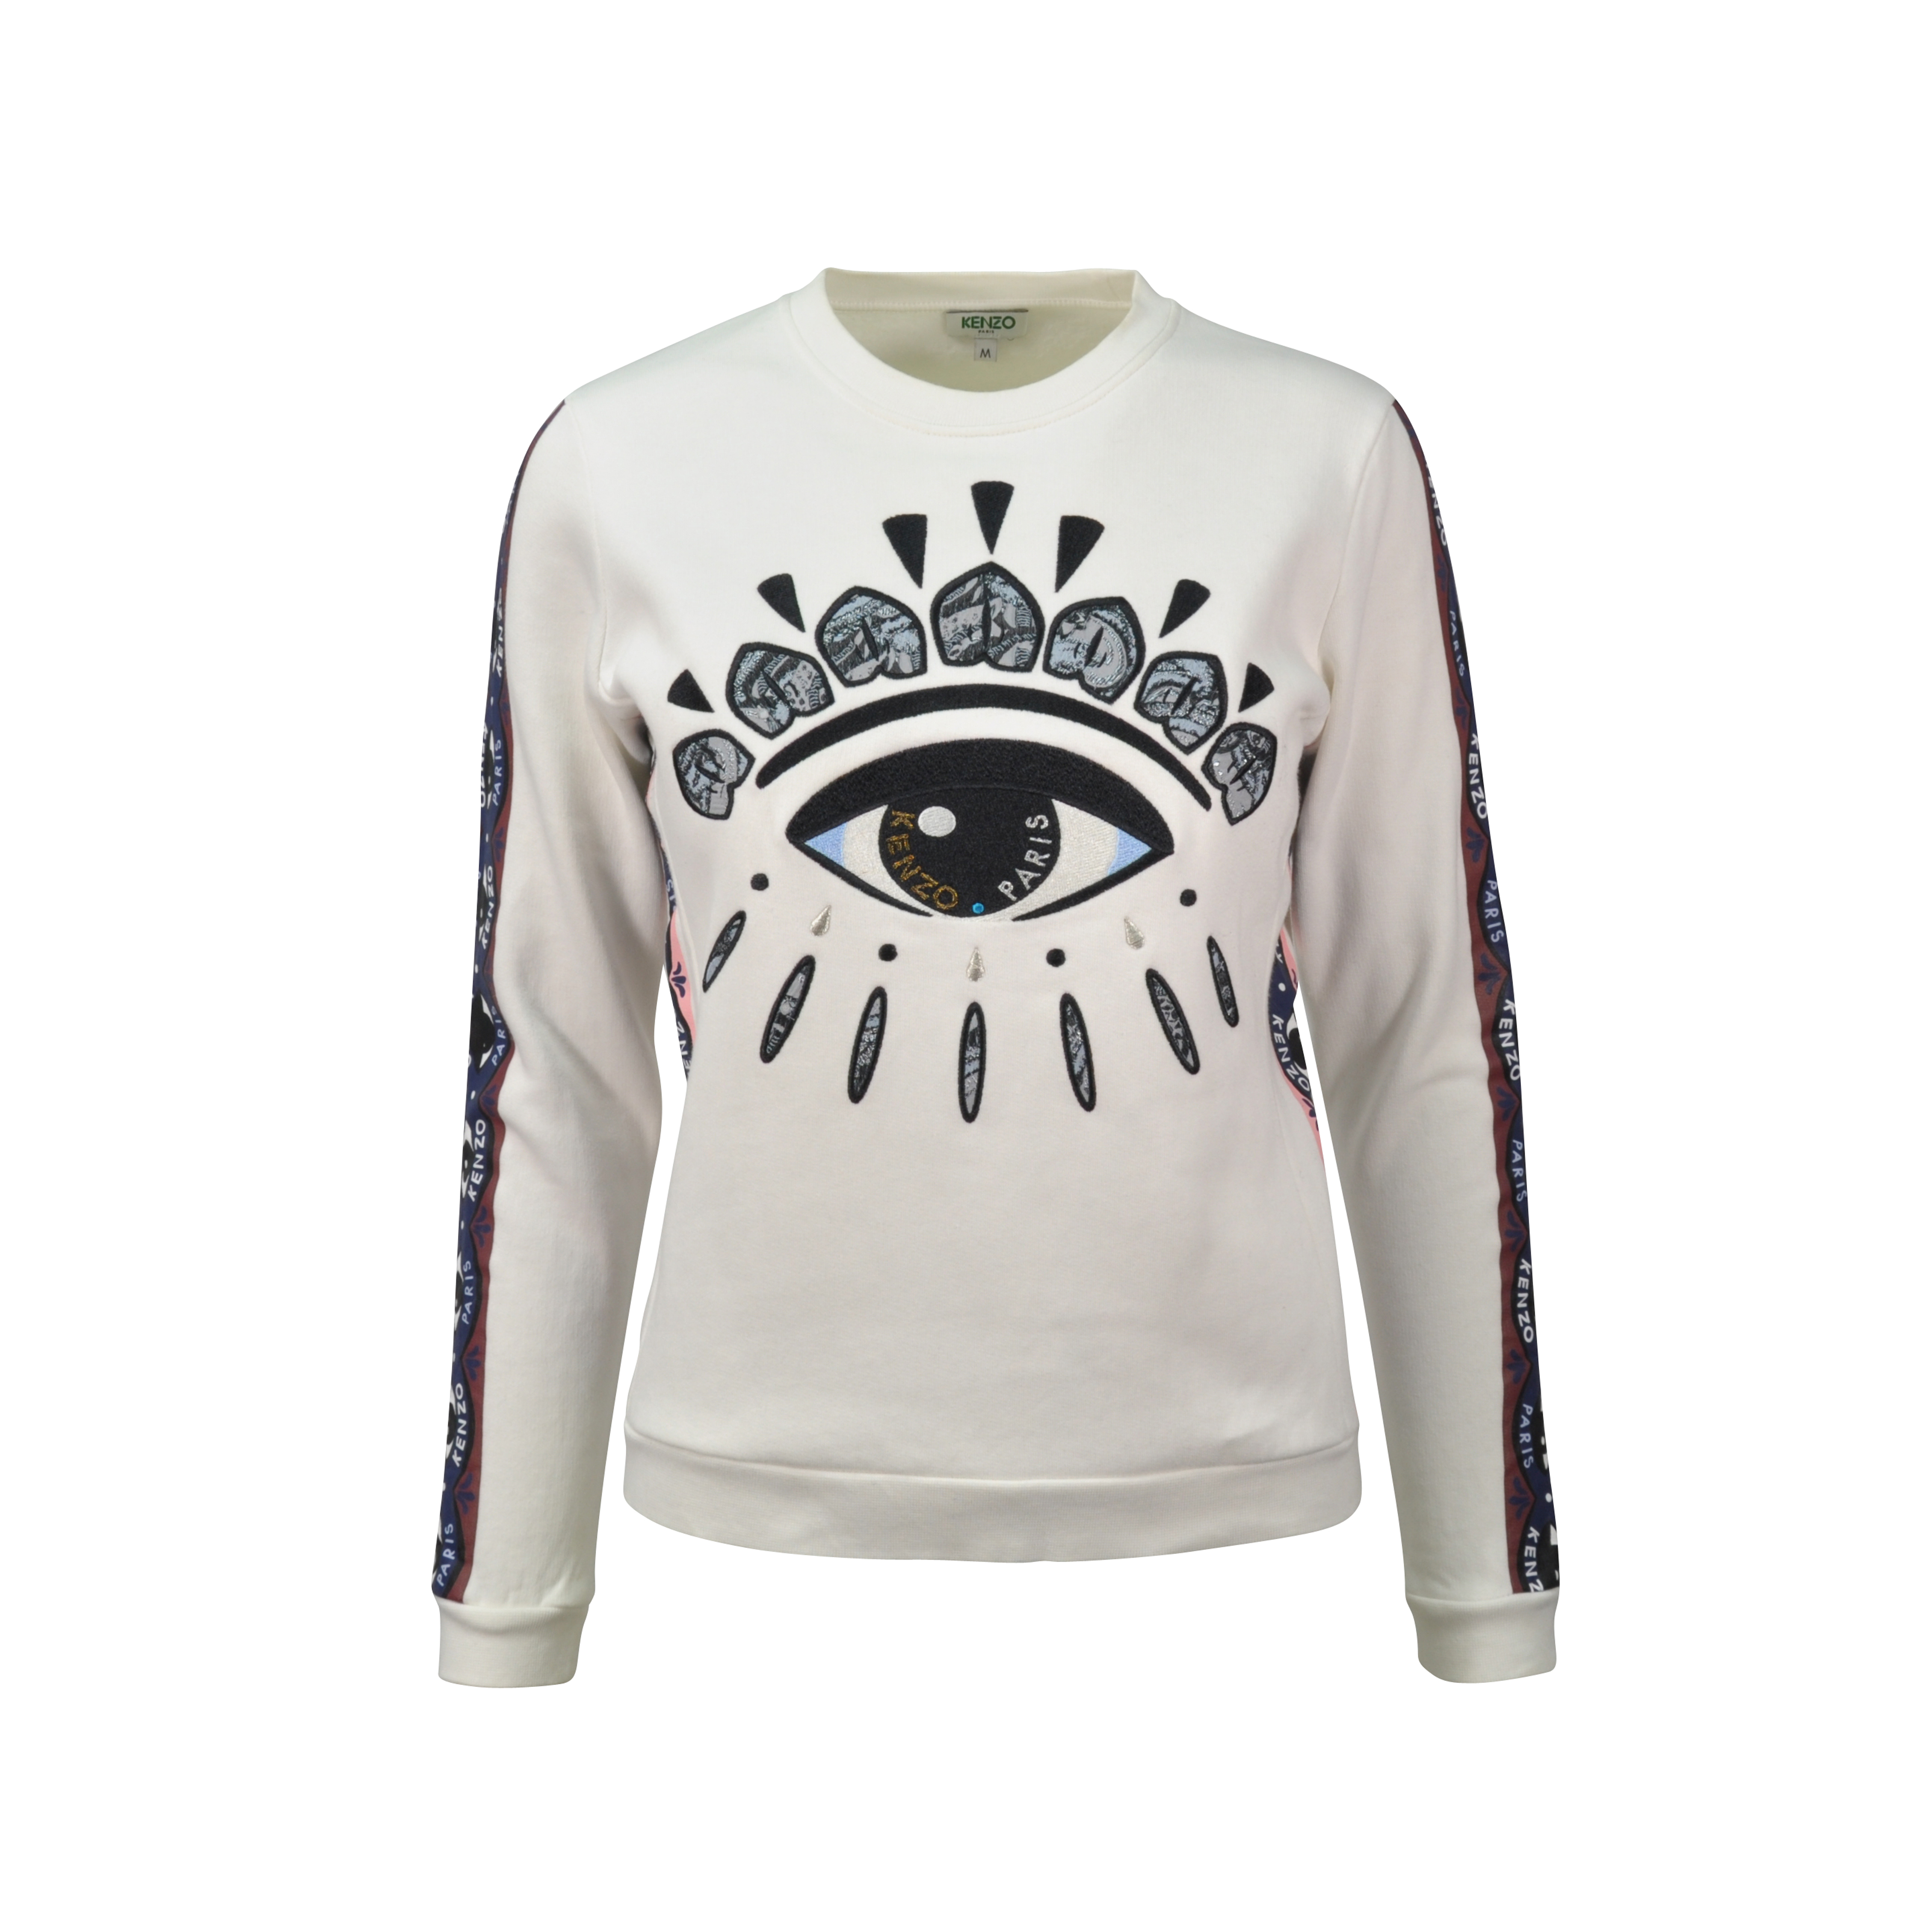 4eb41420 Authentic Second Hand Kenzo Eye Lotus Sweatshirt (PSS-197-00019) | THE  FIFTH COLLECTION